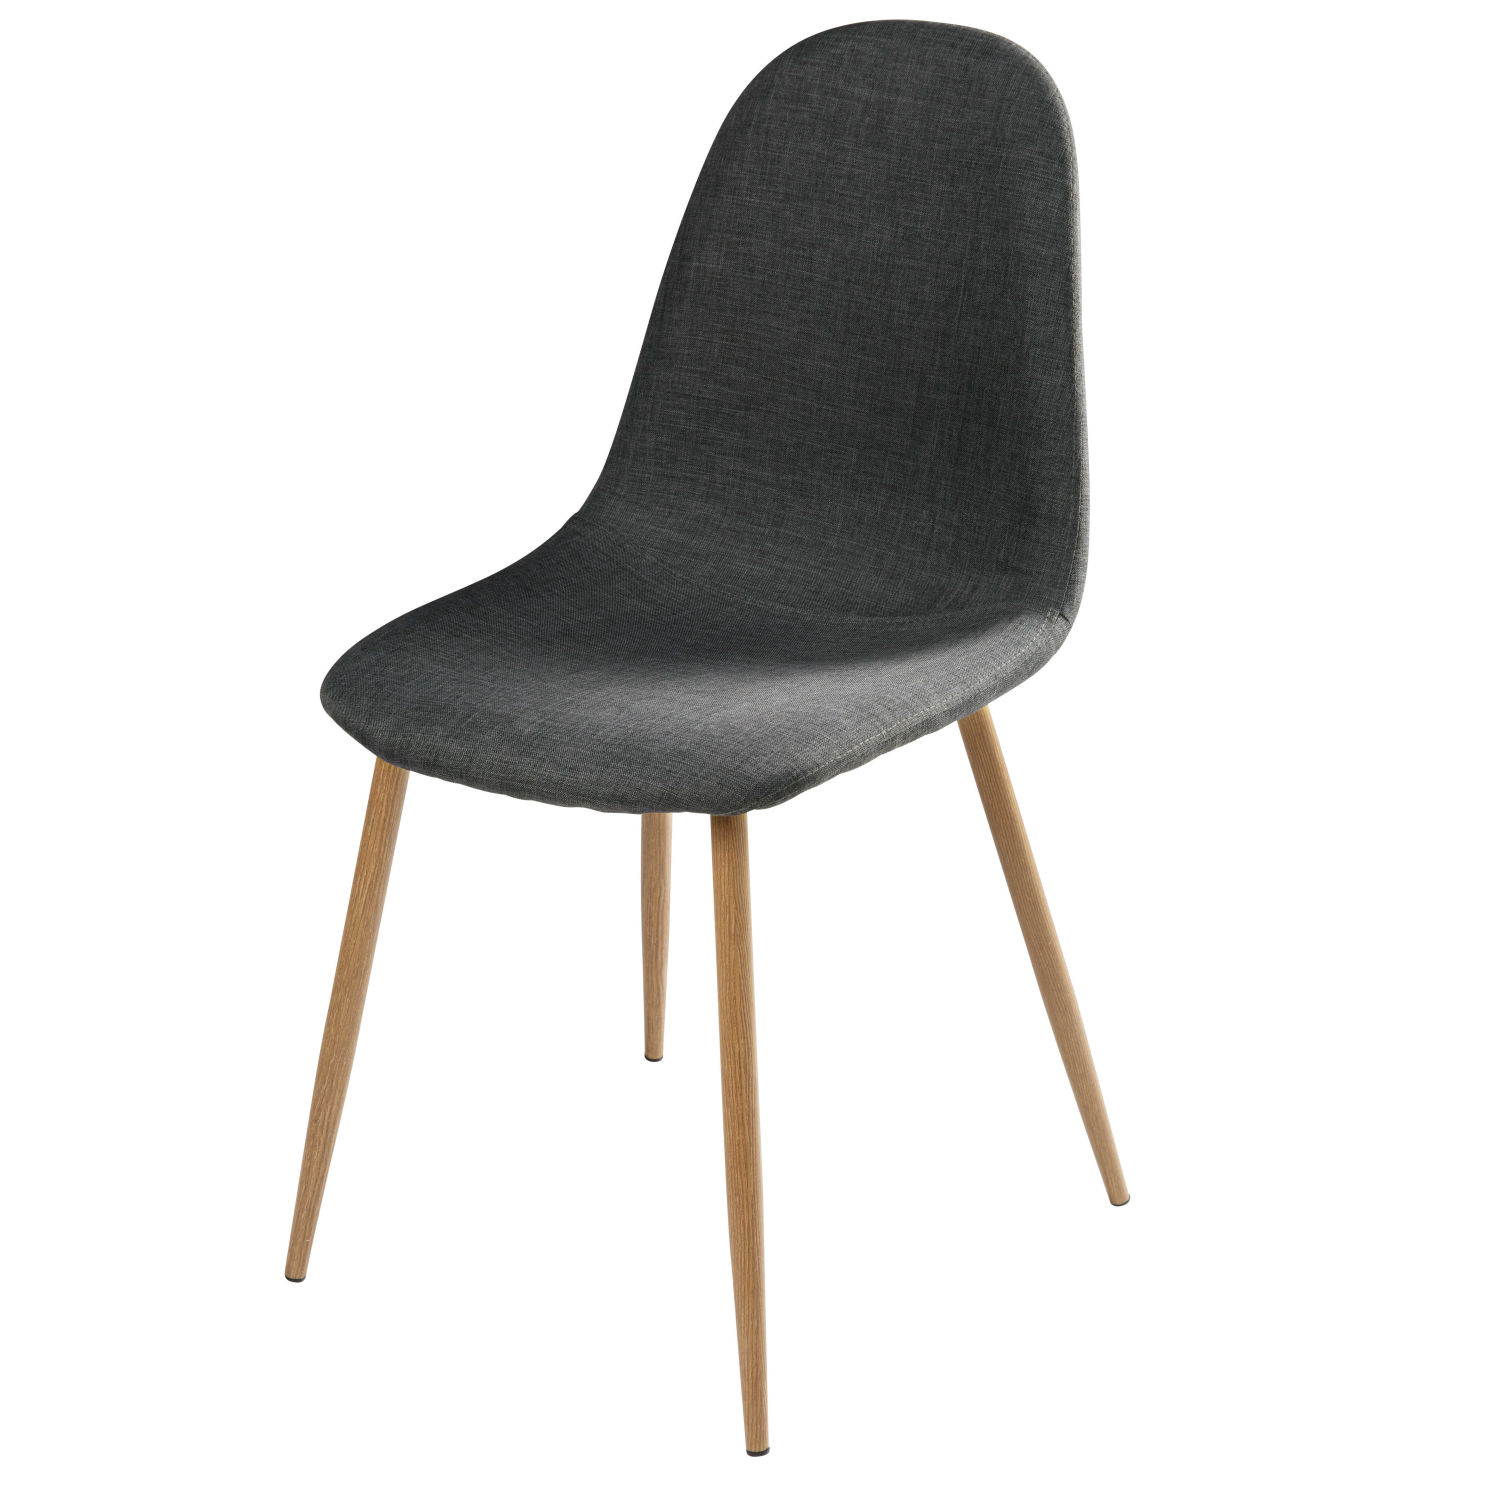 Chaise style scandinave gris anthracite et m tal maisons - Chaise gris anthracite ...